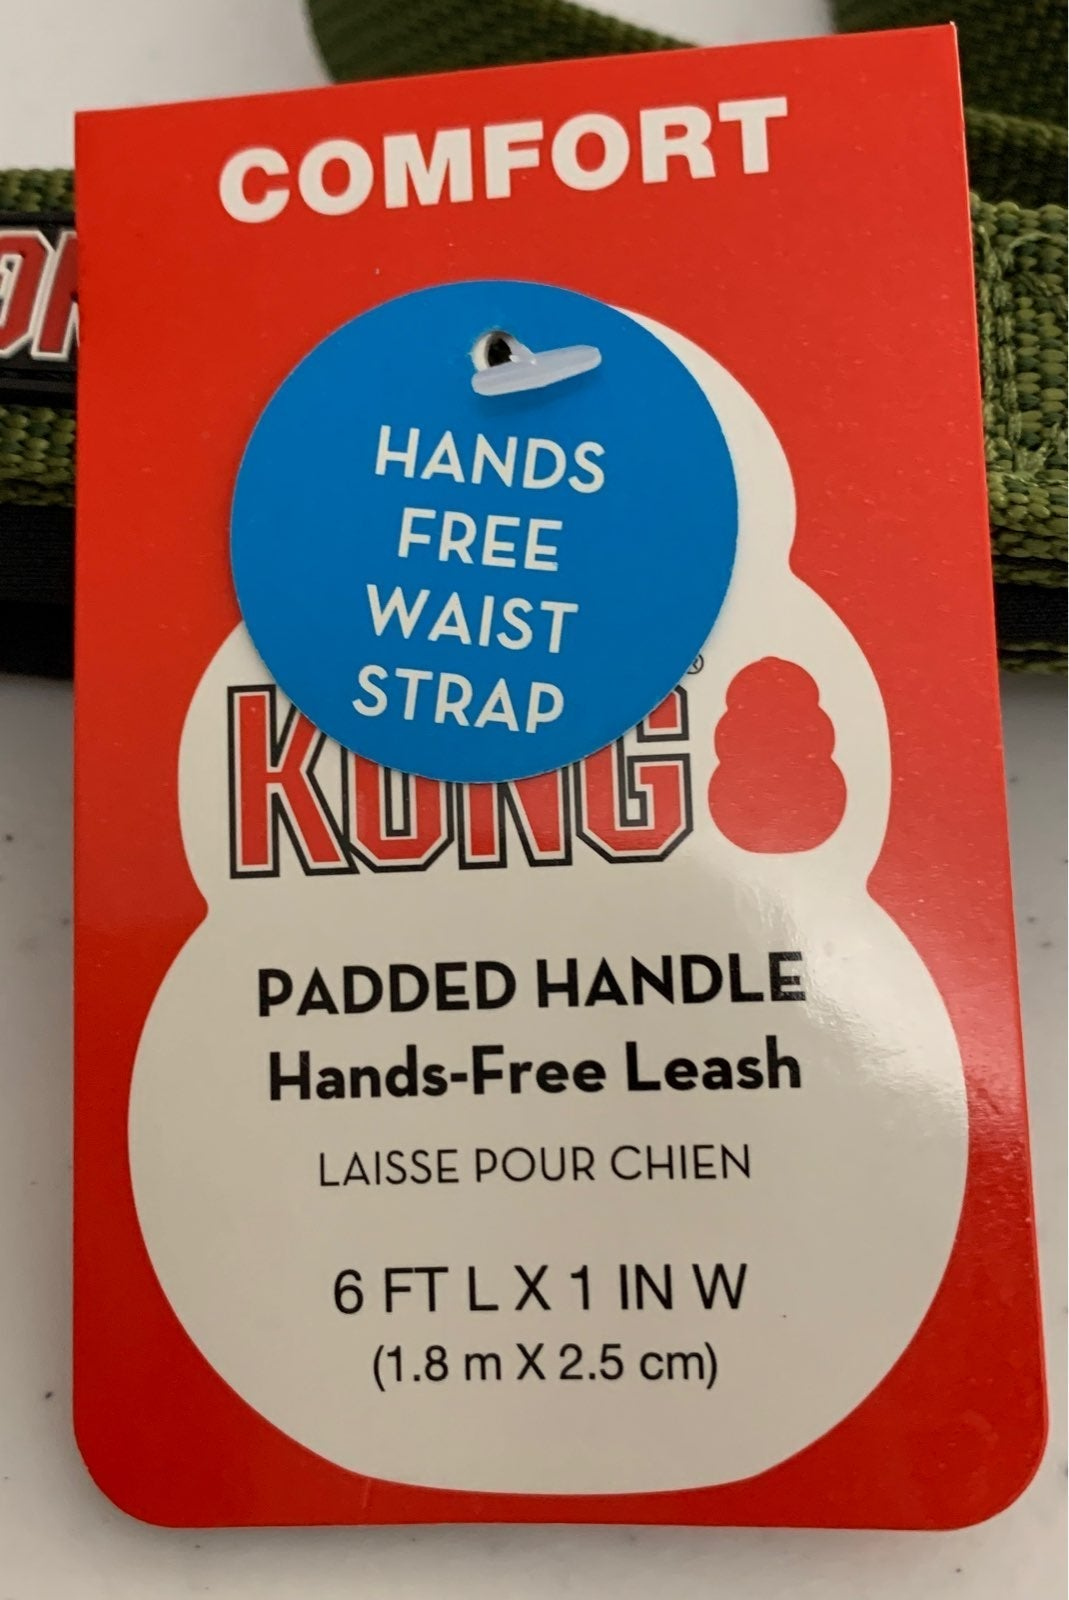 Kong Padded Handle Hands-FreeLeash